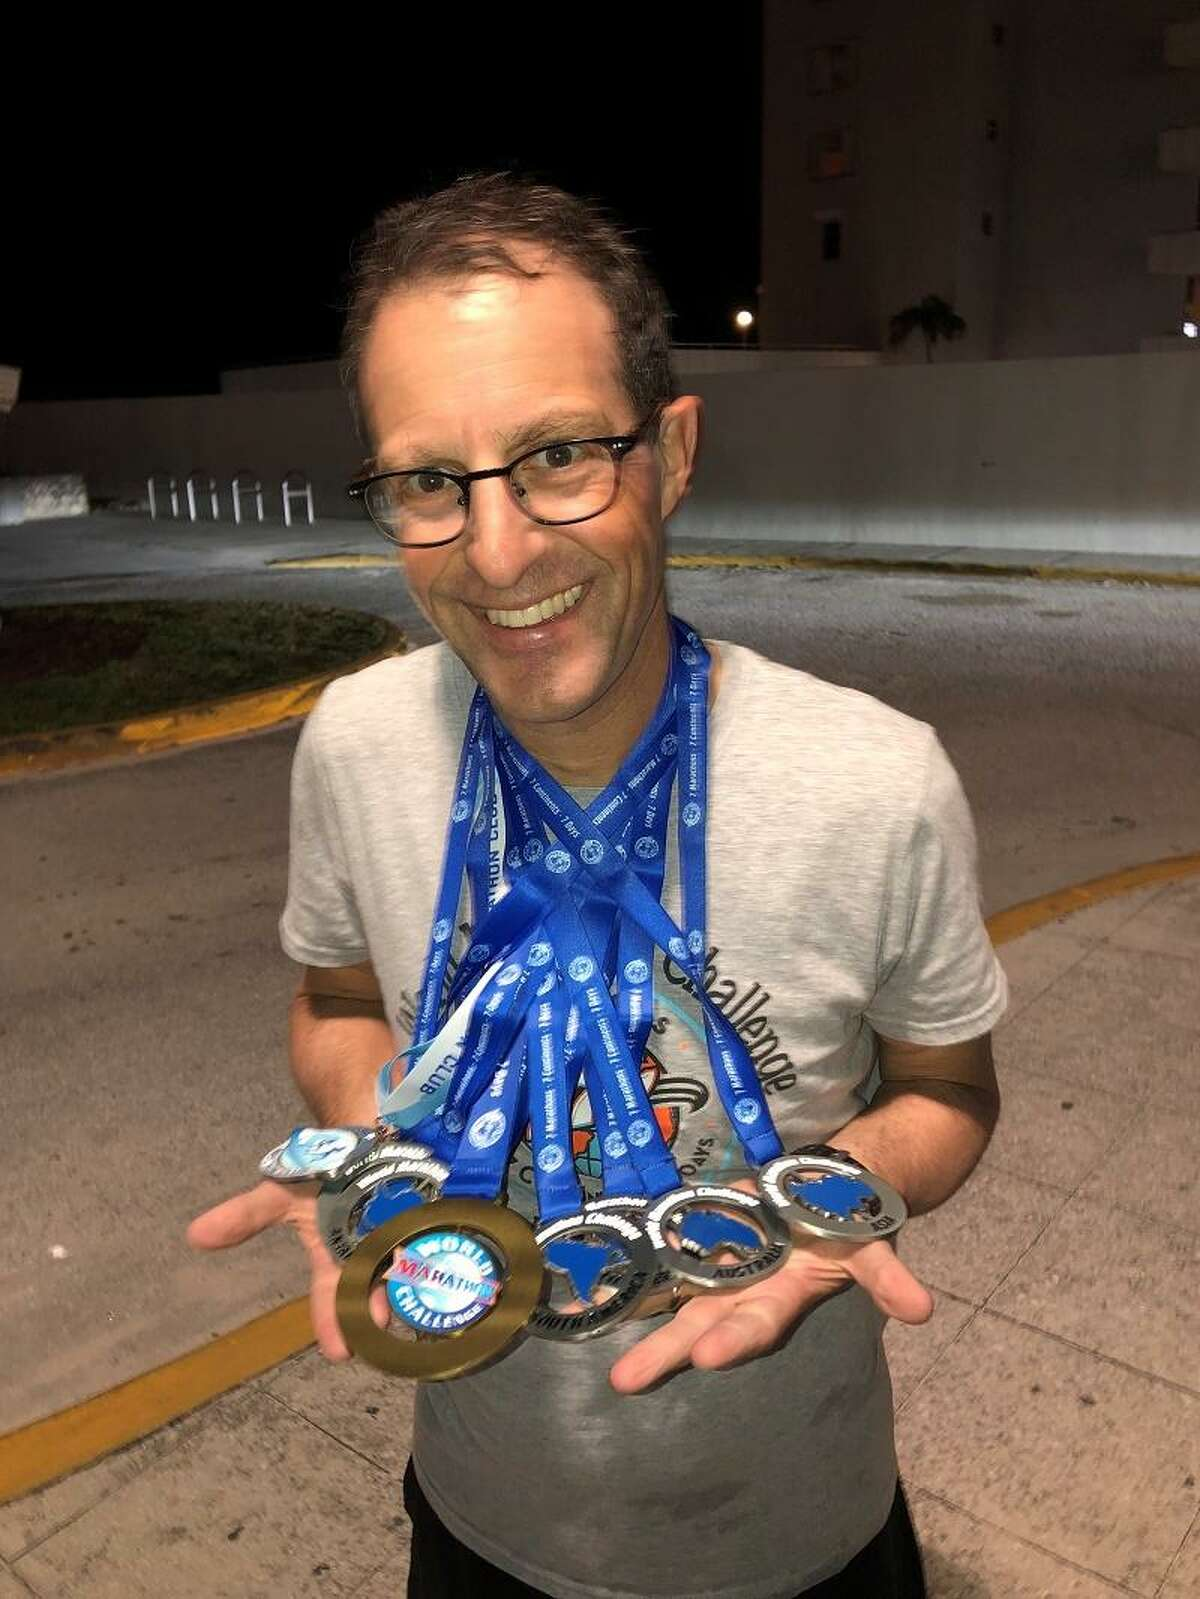 New Haven lawyer Josh Cohen ran 7 marathons in 7 days on 7 continents.